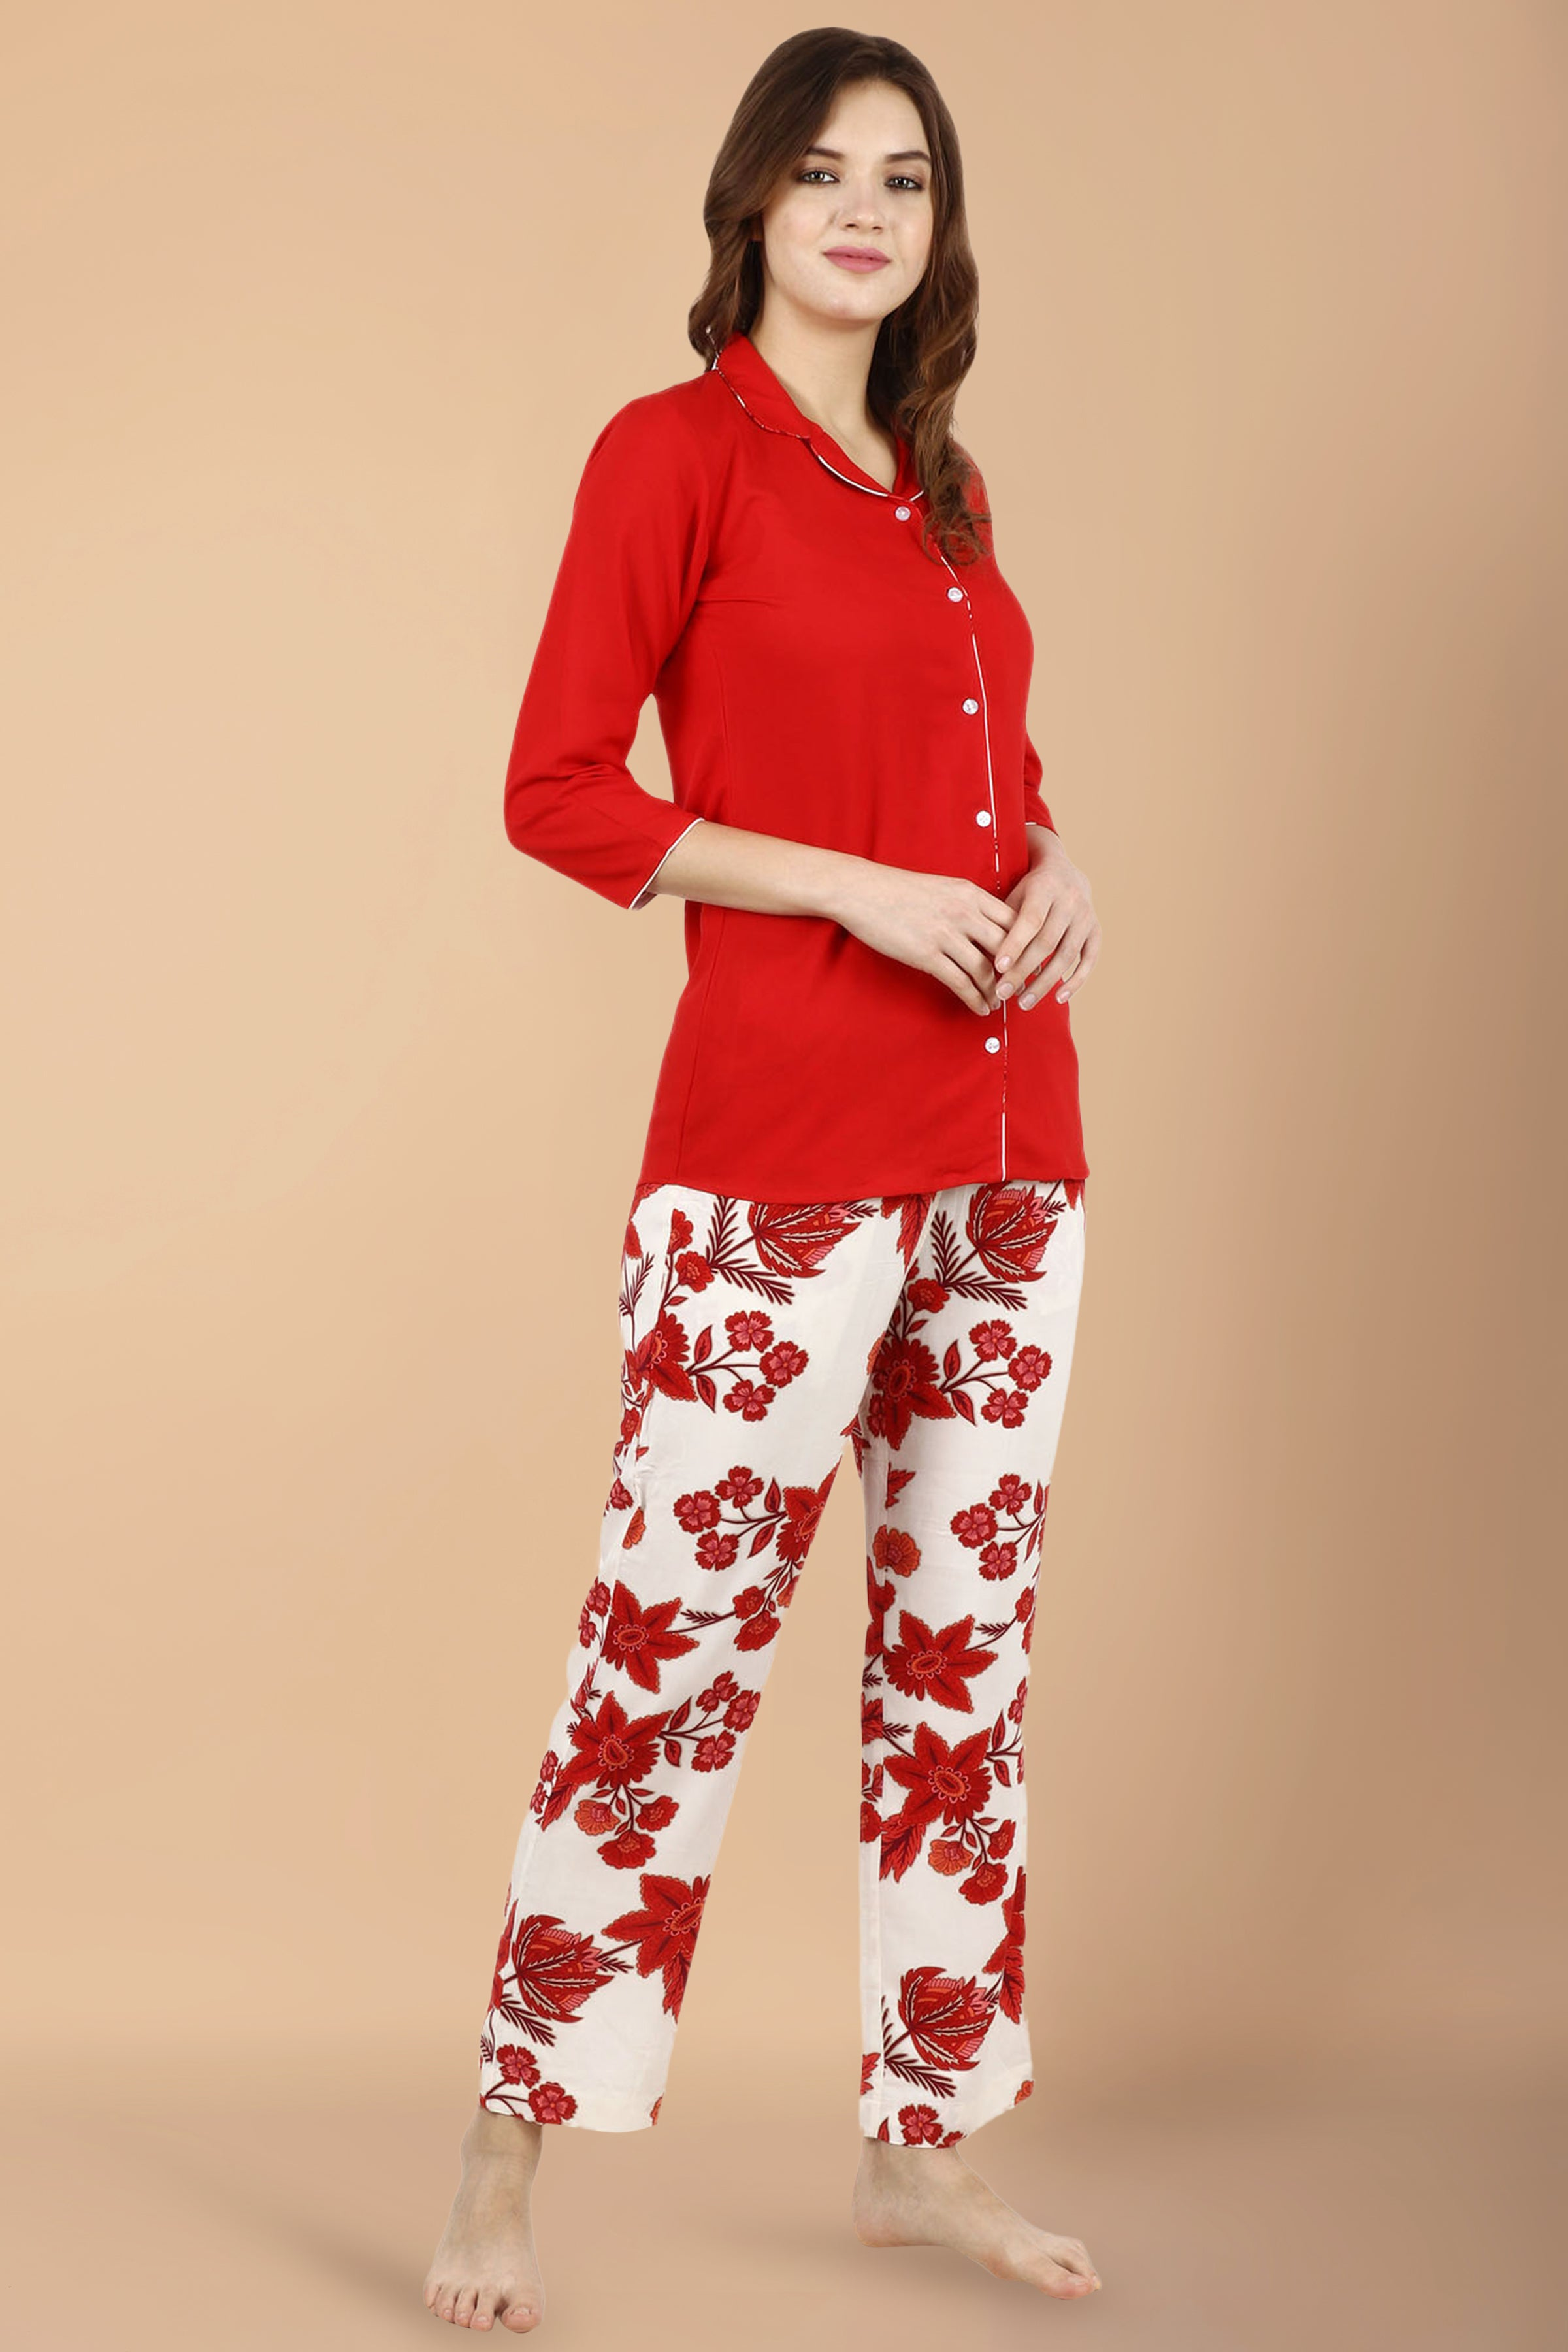 10xl, 2xl, 3xl, 4xl, 5xl, 6xl, 7xl, 8xl, 9xl, double pockets, floral, front button placket, lounge wear suits, Notched Collar, plus size night suit, printed, rayon, red